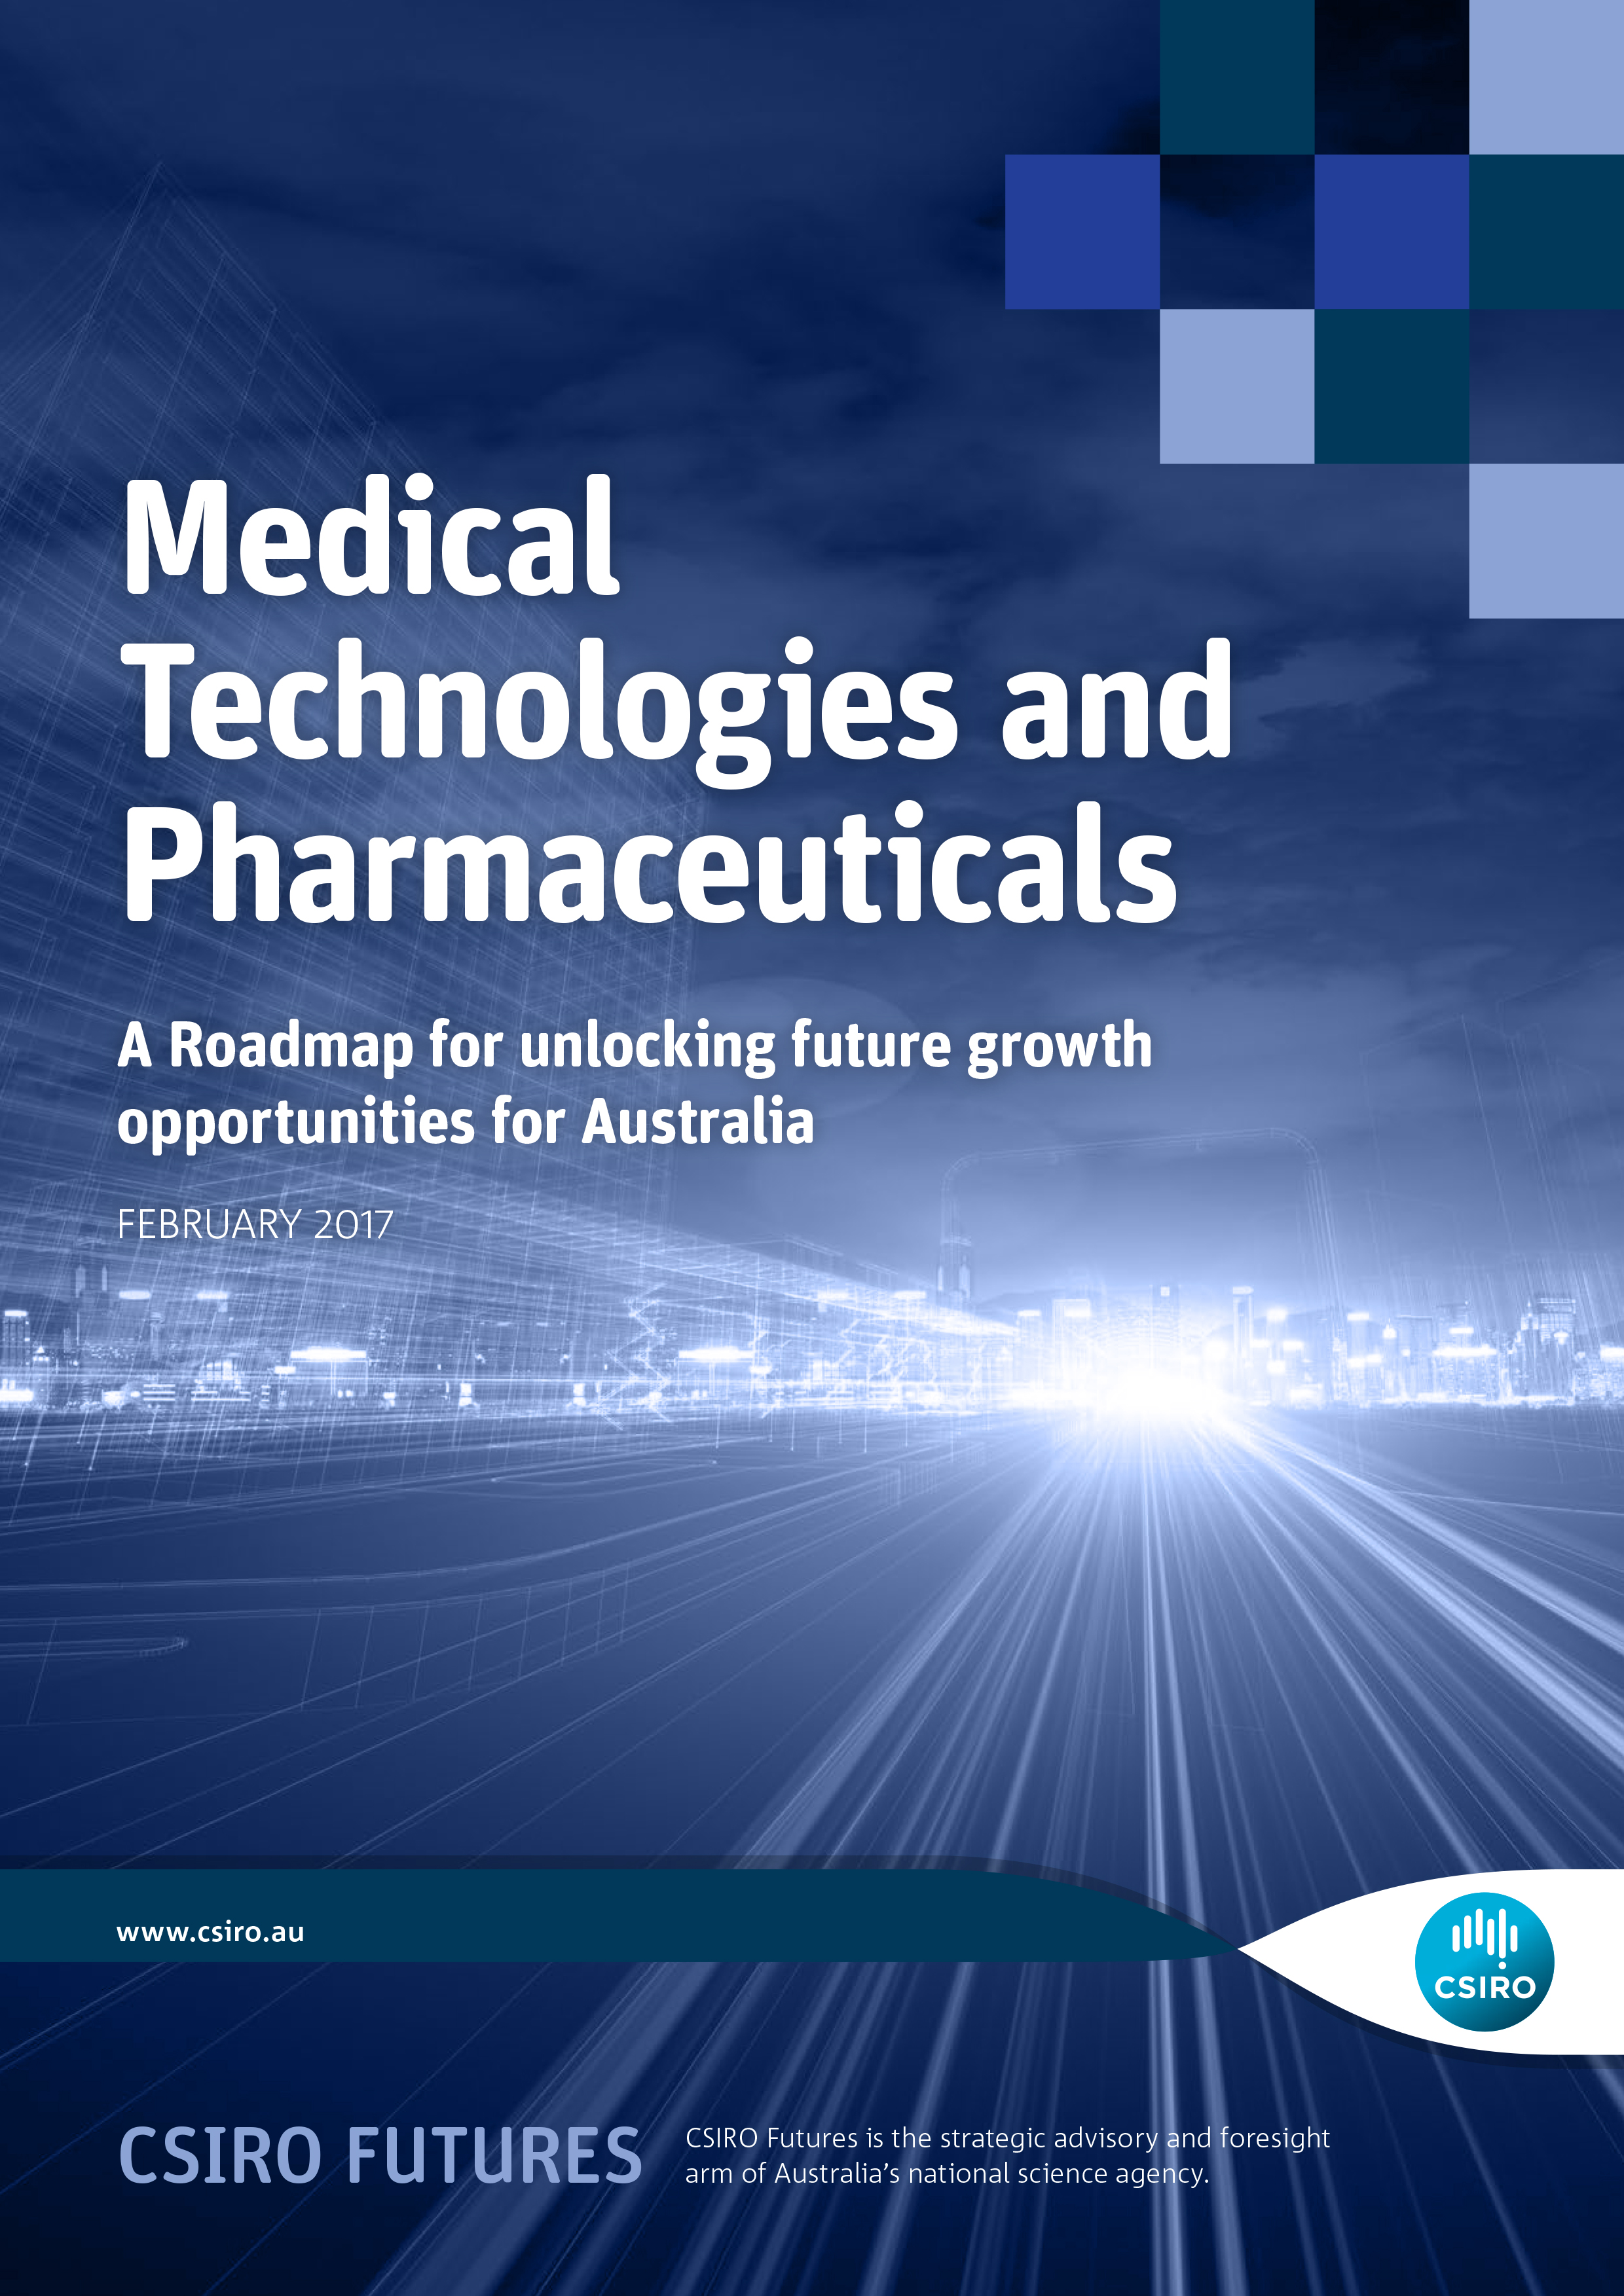 Medical Technologies and Pharmaceuticals Roadmap report cover